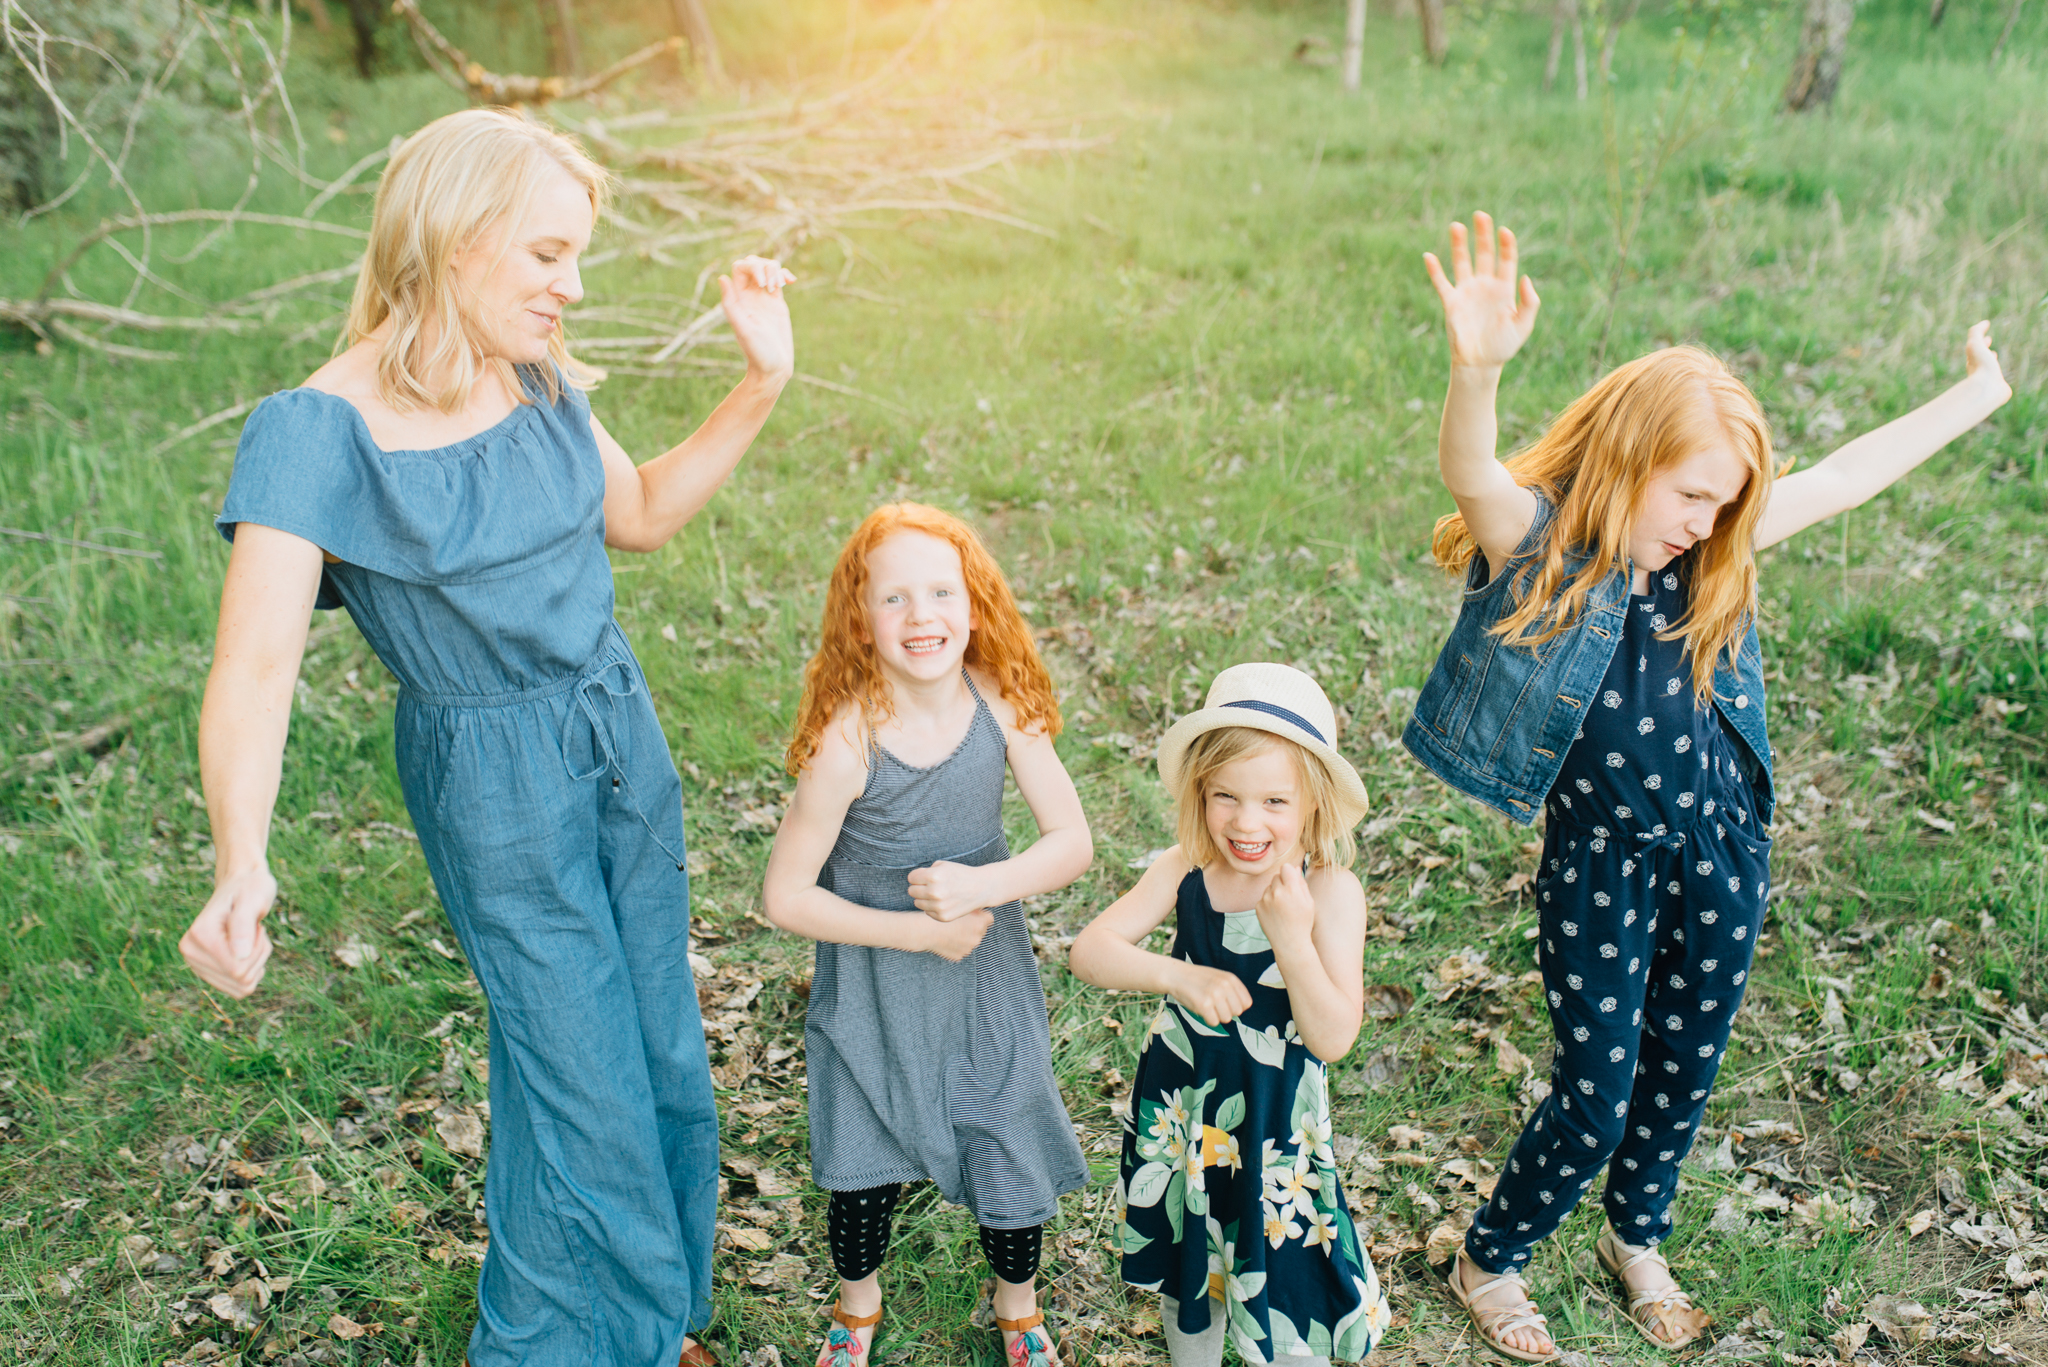 boise family lifestyle session| barber park | boise family photographer | dancing with mom